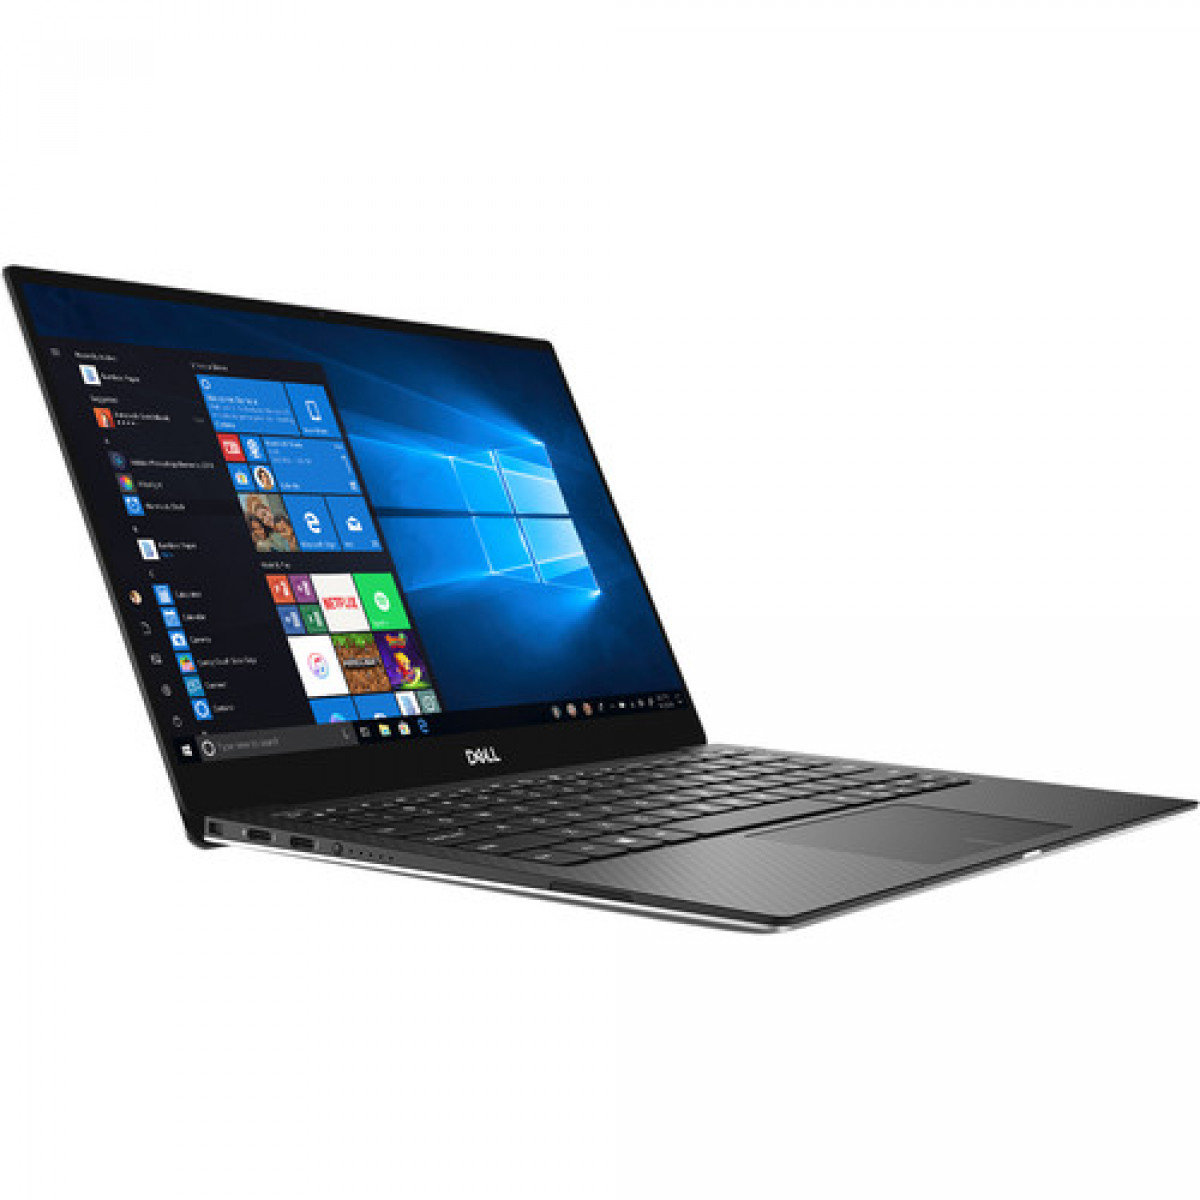 dell xps 13 9380 laptop1   tejar 1 - 5 Best Laptops for College Students to Get in 2020